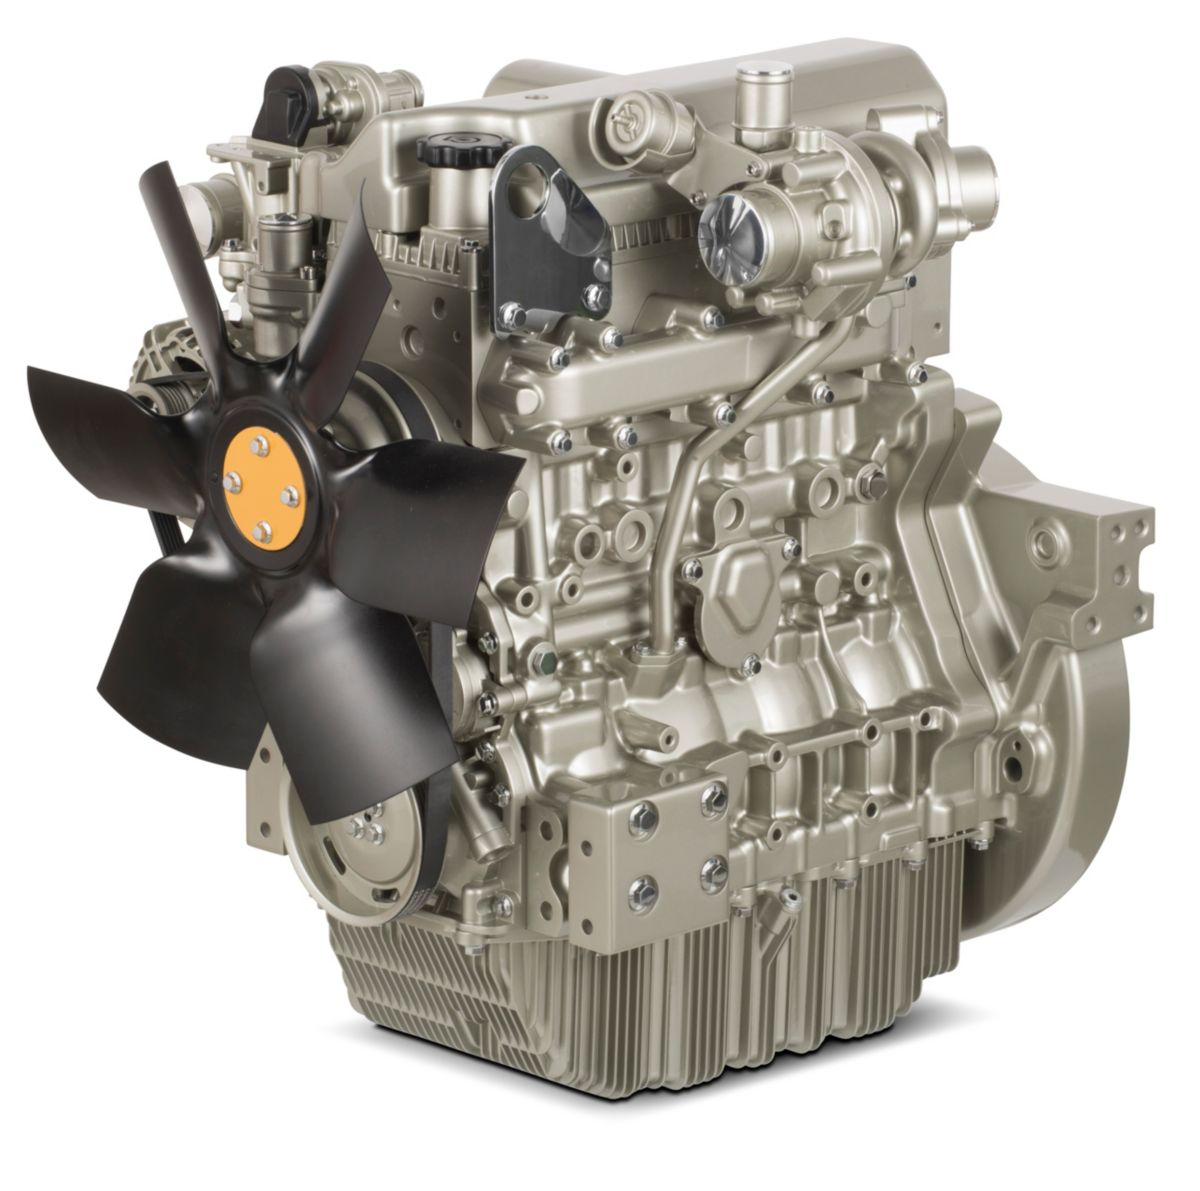 New Perkins® Syncro 2.8 liter engine on display at The Rental Show